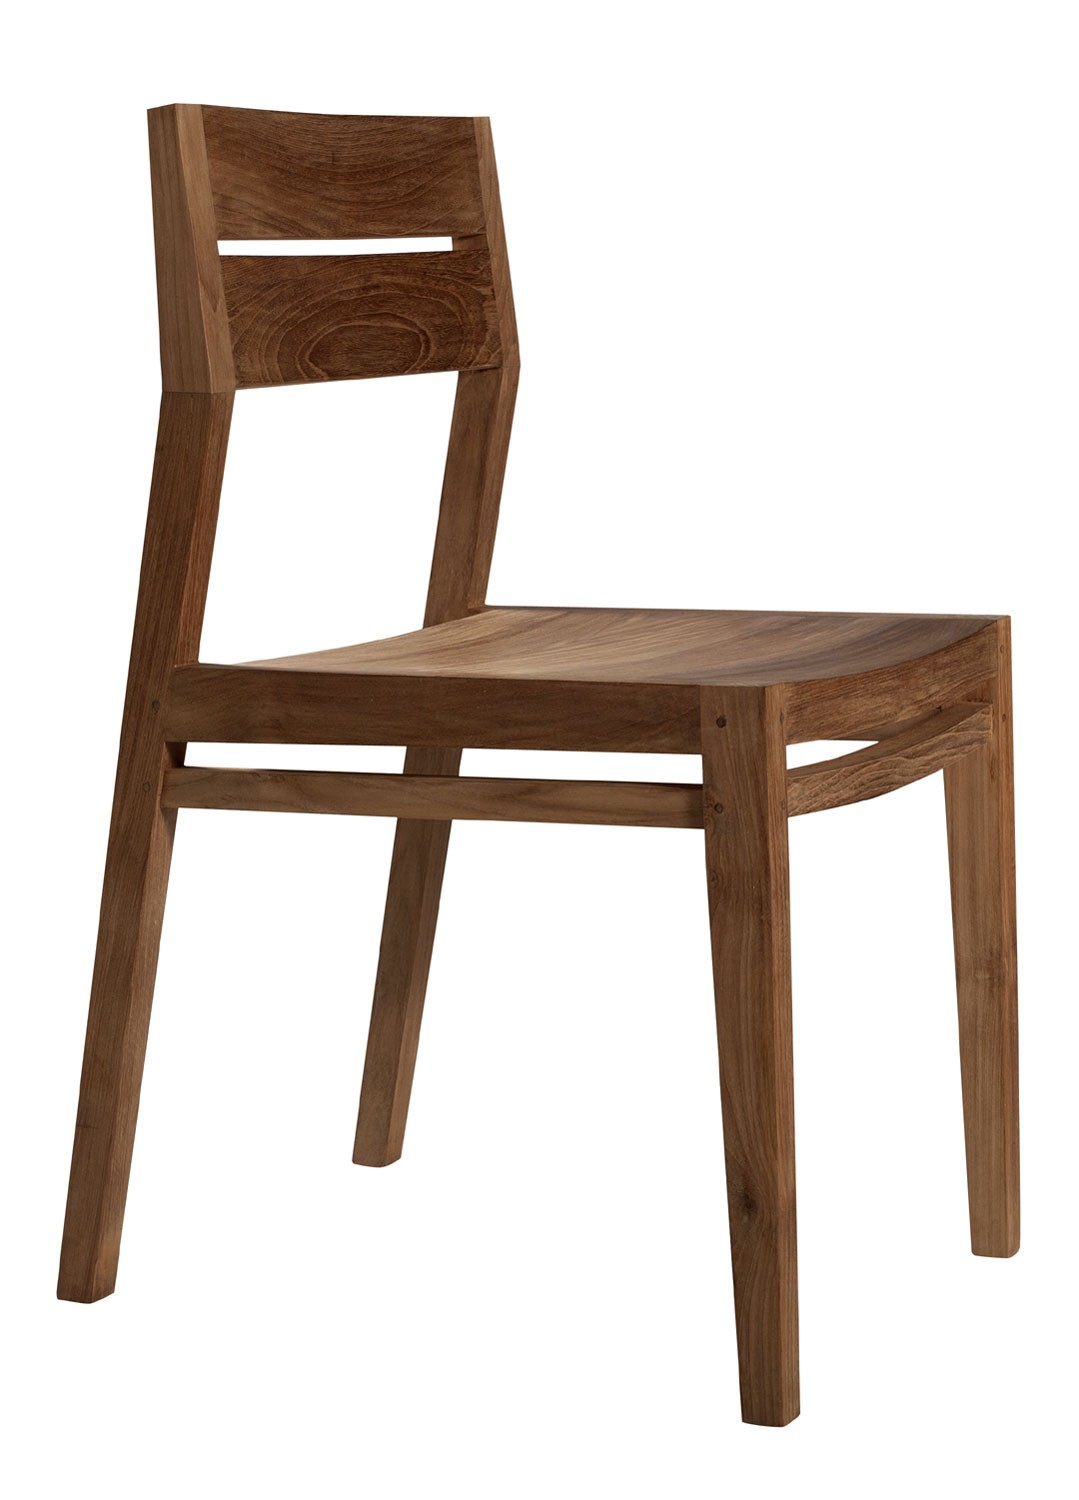 Ethnicraft Teak Ex 1 dining chair